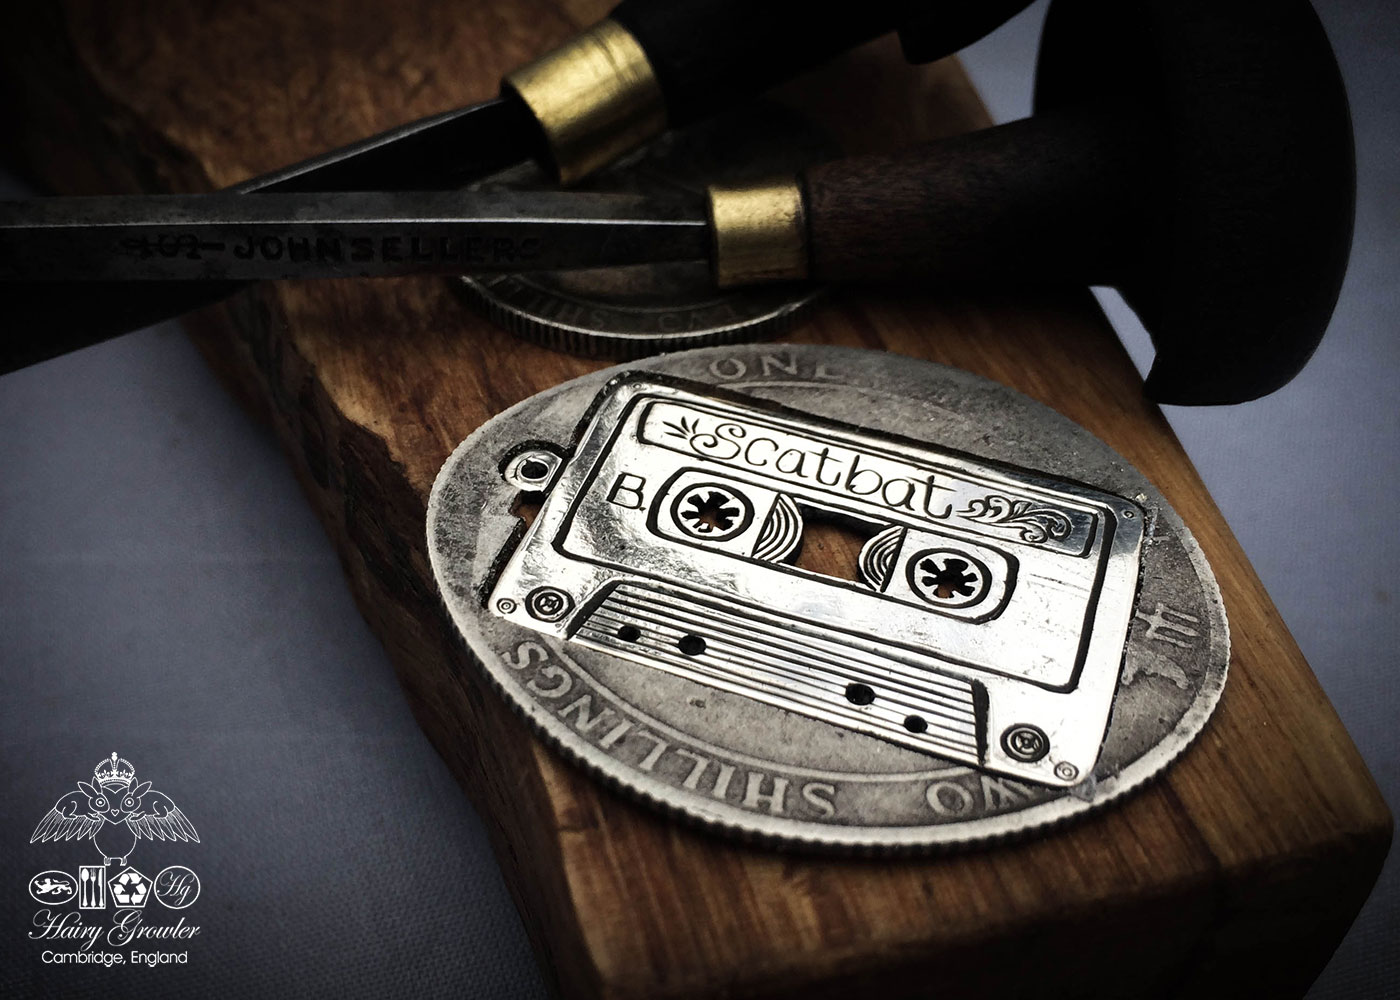 old skool mix tape silver jewellery hadnmade and recycled silver